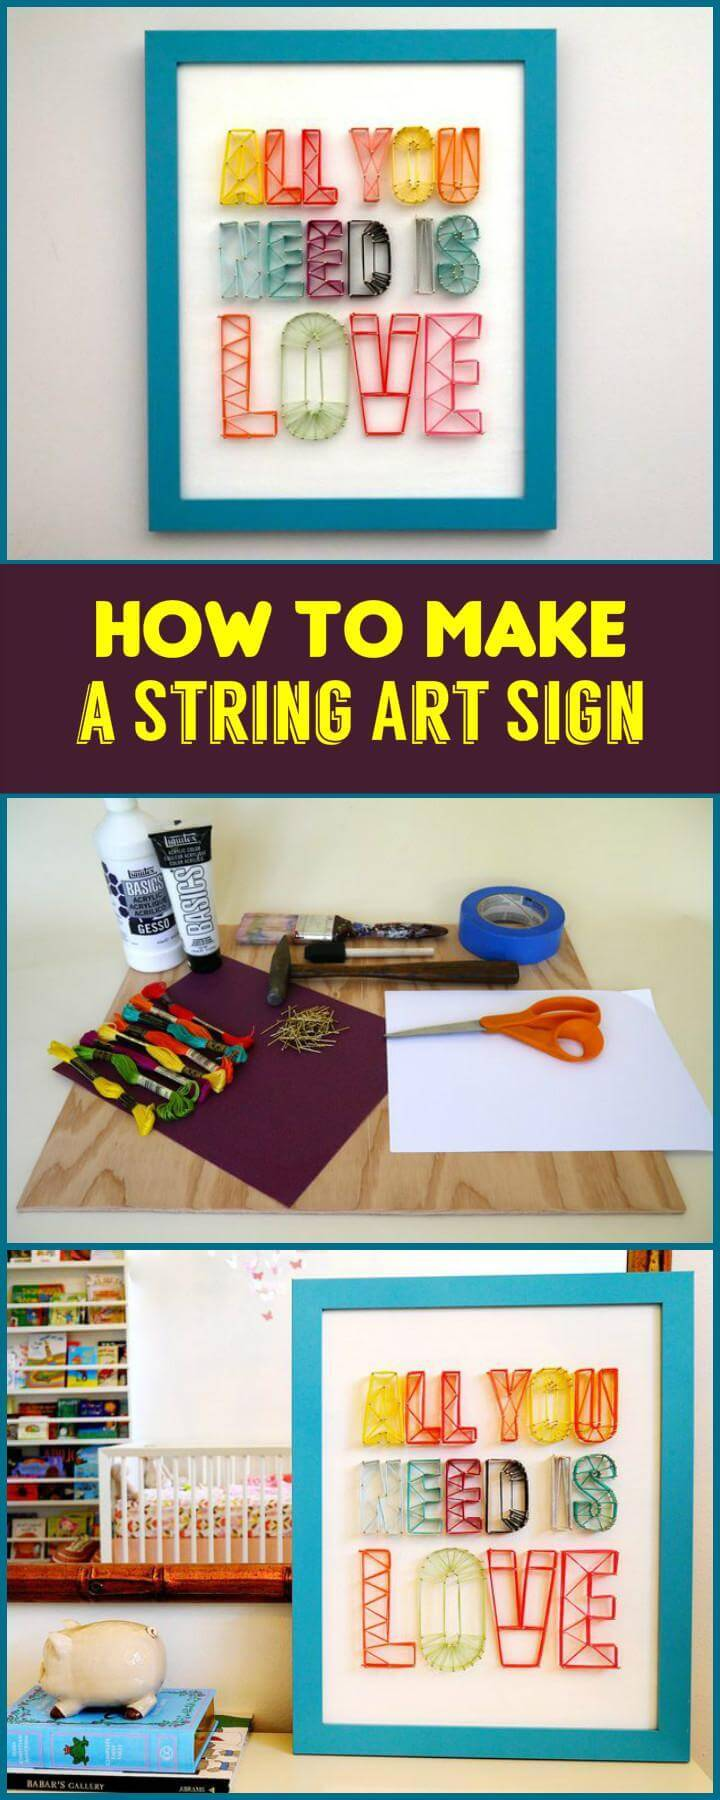 How to Make a String Art Sign